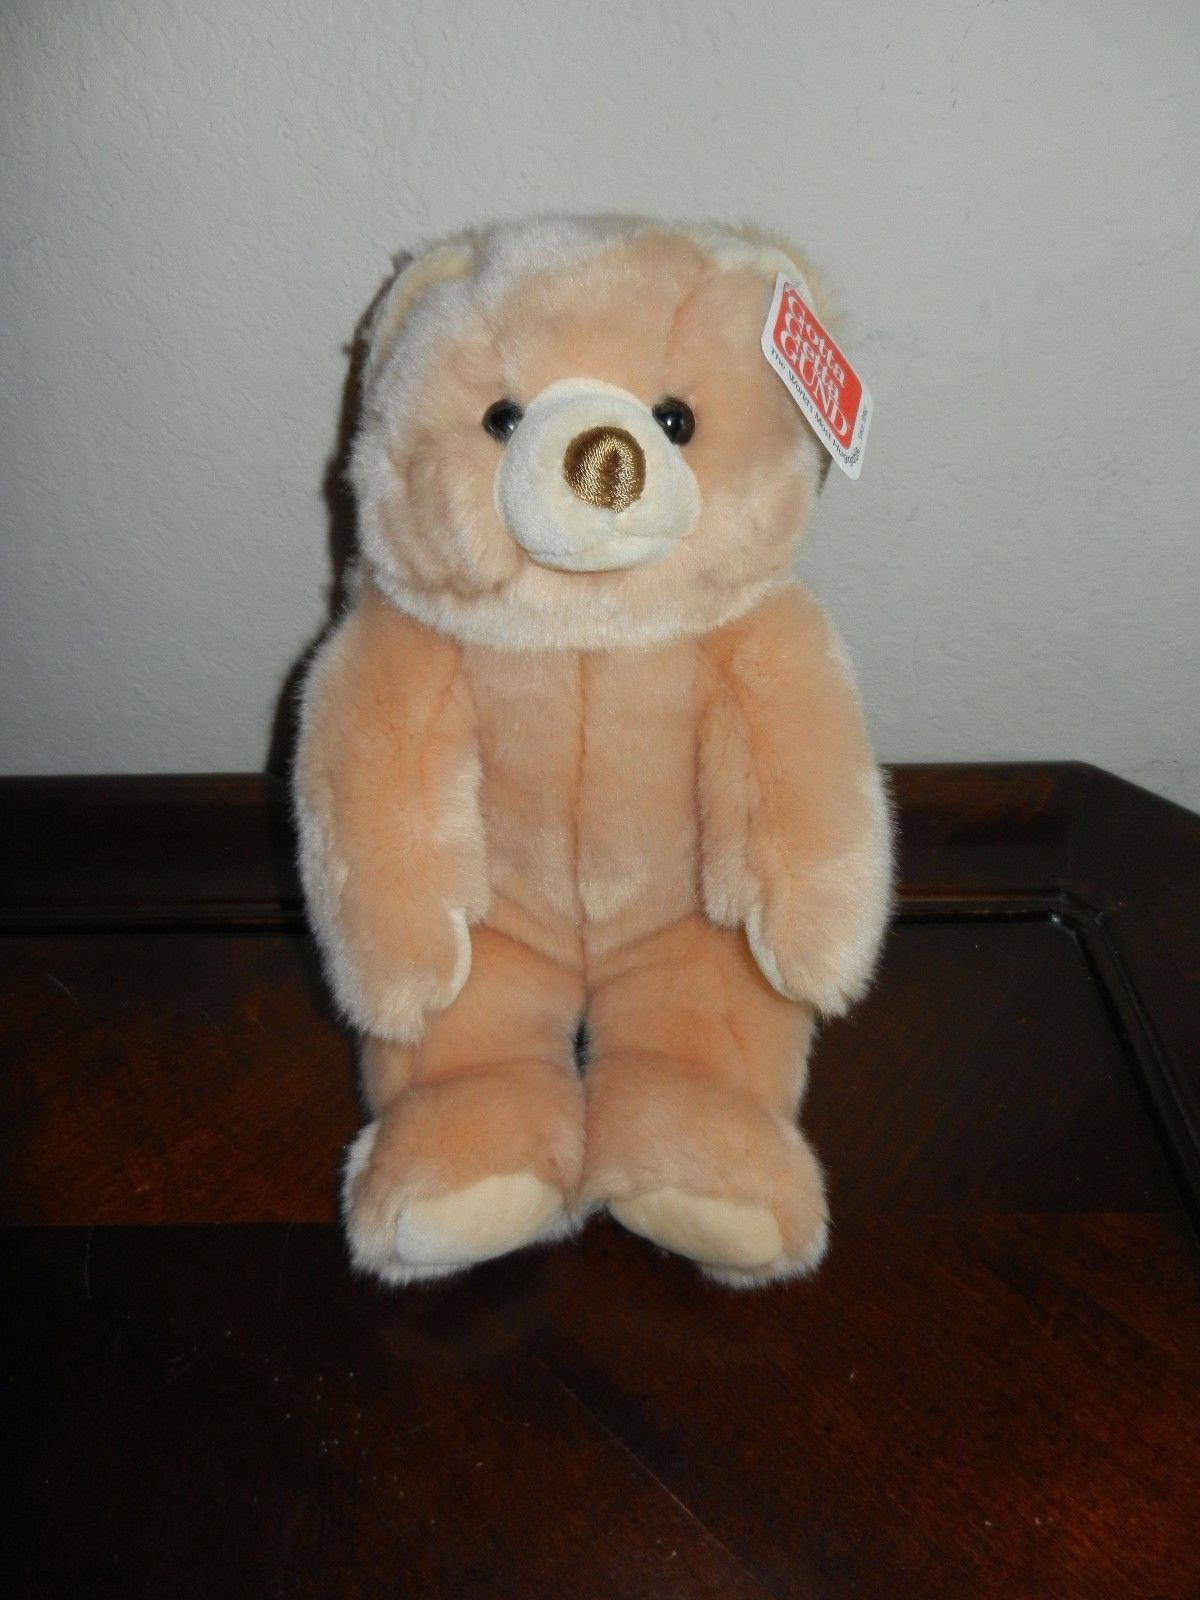 Primary image for Gund Stuffed Plush Teddy Bear ~ Cubbins ~  Soft Tan Fluffy NWT New with Tags